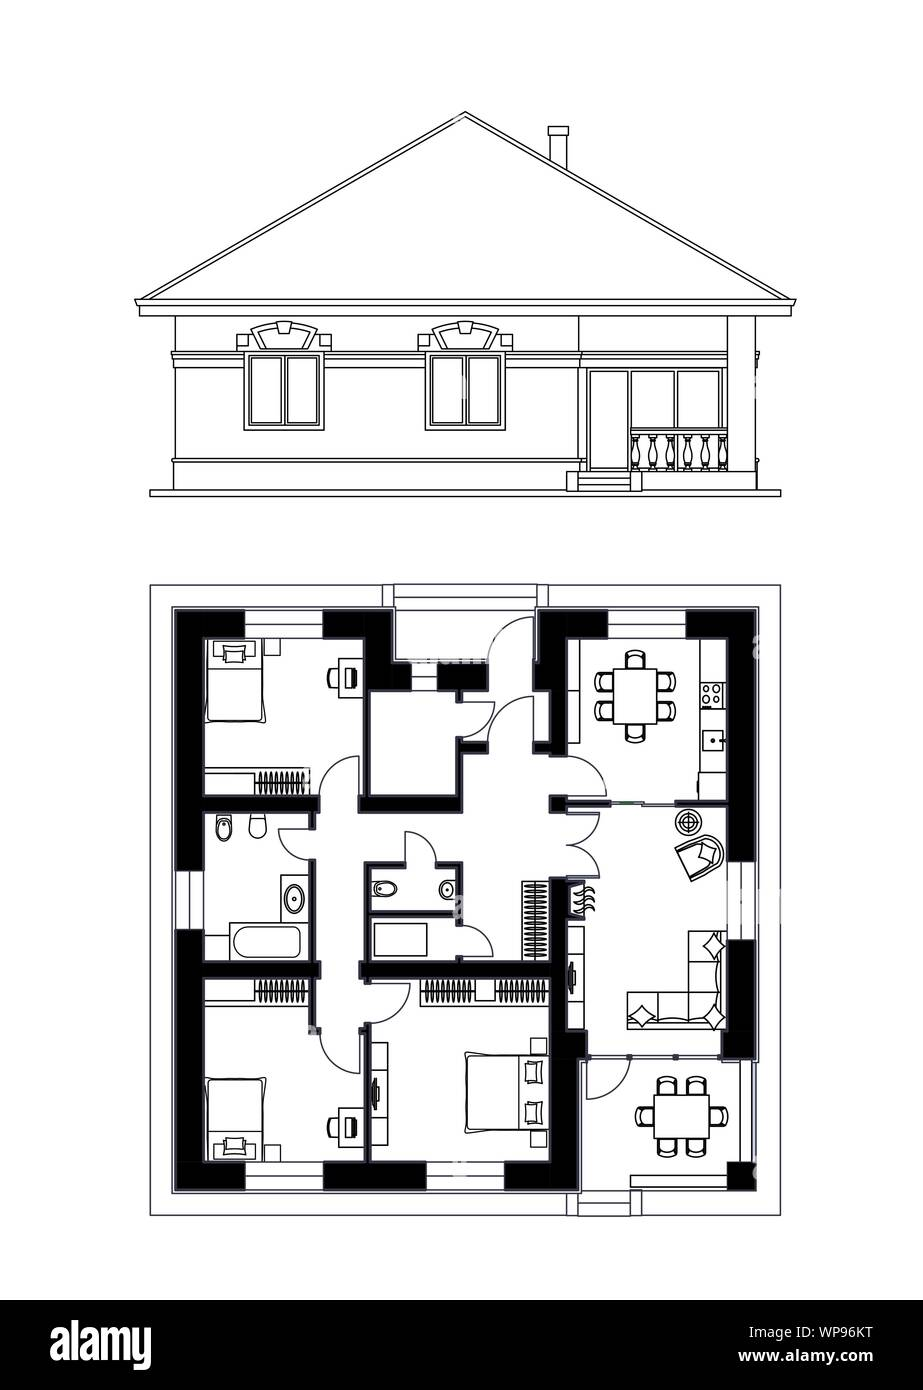 Architectural facade and plan of a house. The drawing of the ... on architect house planning, architect advertising, architect furniture, 3d home architect plans, architect community plans, architect blueprints, architect education, architect landscape, architect construction, architect tools, architect roof plans, architect house sketches, architect software, architect design, architect house ideas, architect hotels, architect wallpaper, architect engineers, architect drafting, architect office,